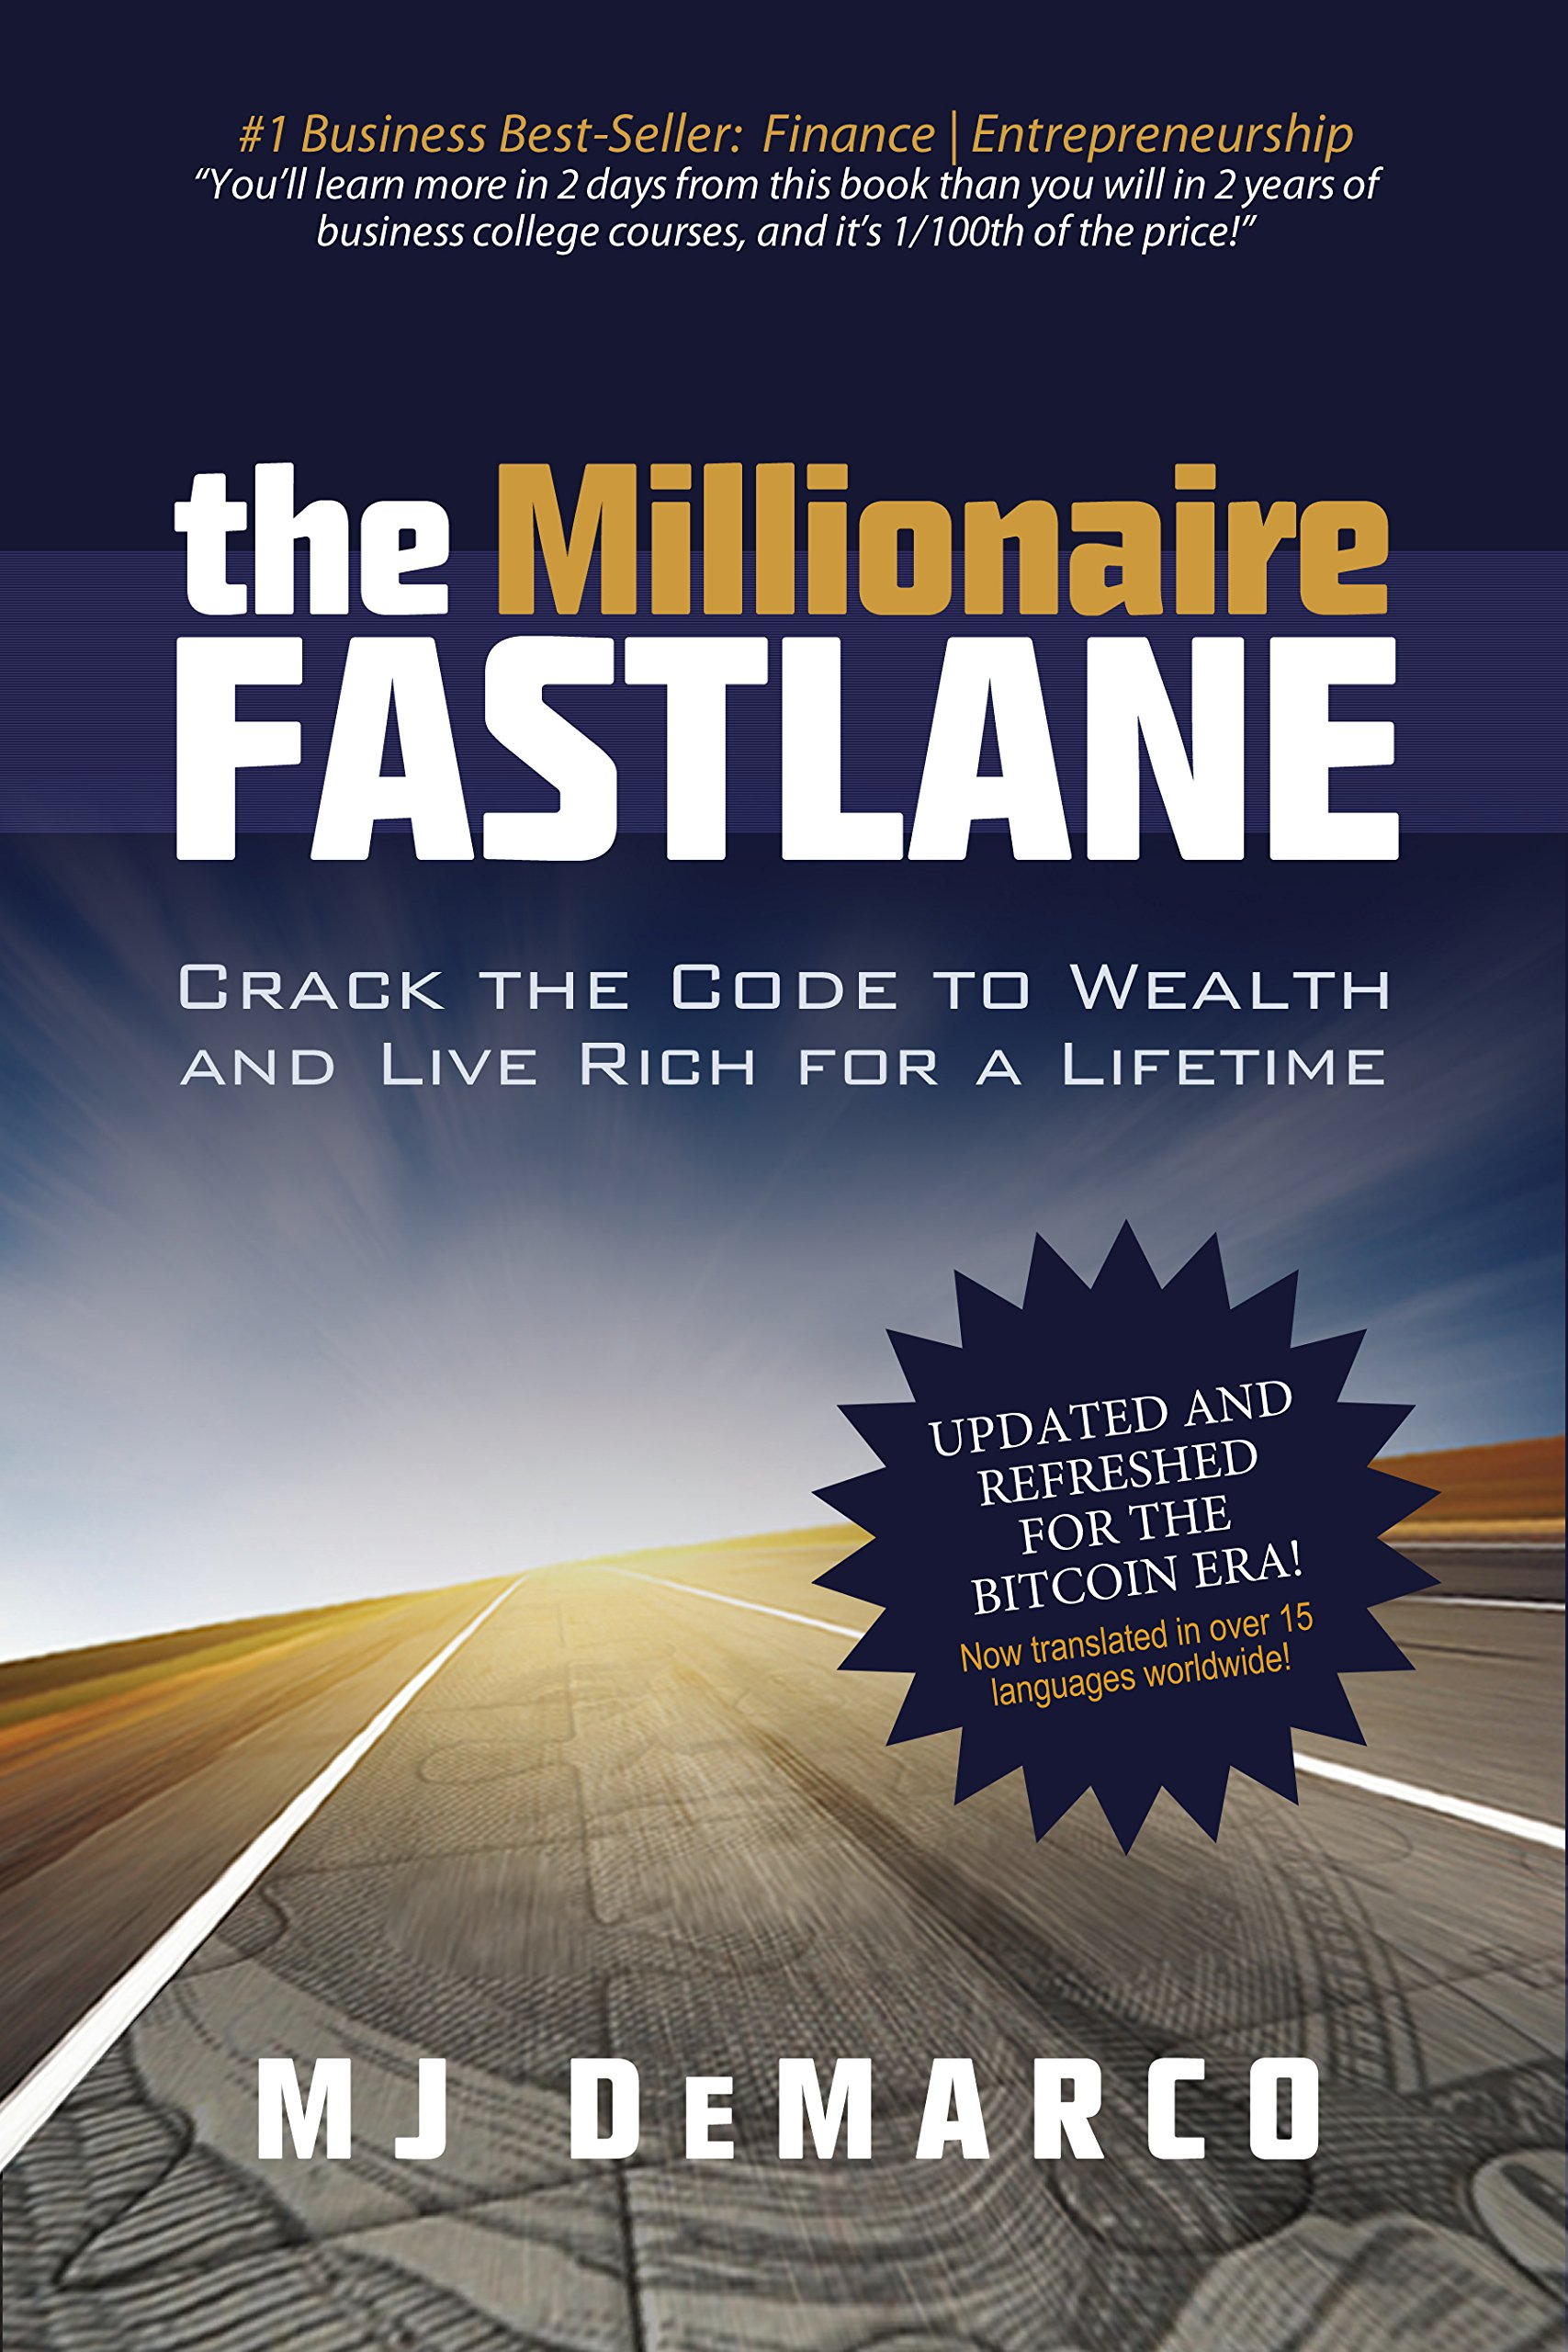 Buy The Millionaire Fastlane: Crack the Code to Wealth and Live Rich for a  Lifetime Book Online at Low Prices in India | The Millionaire Fastlane:  Crack the ...